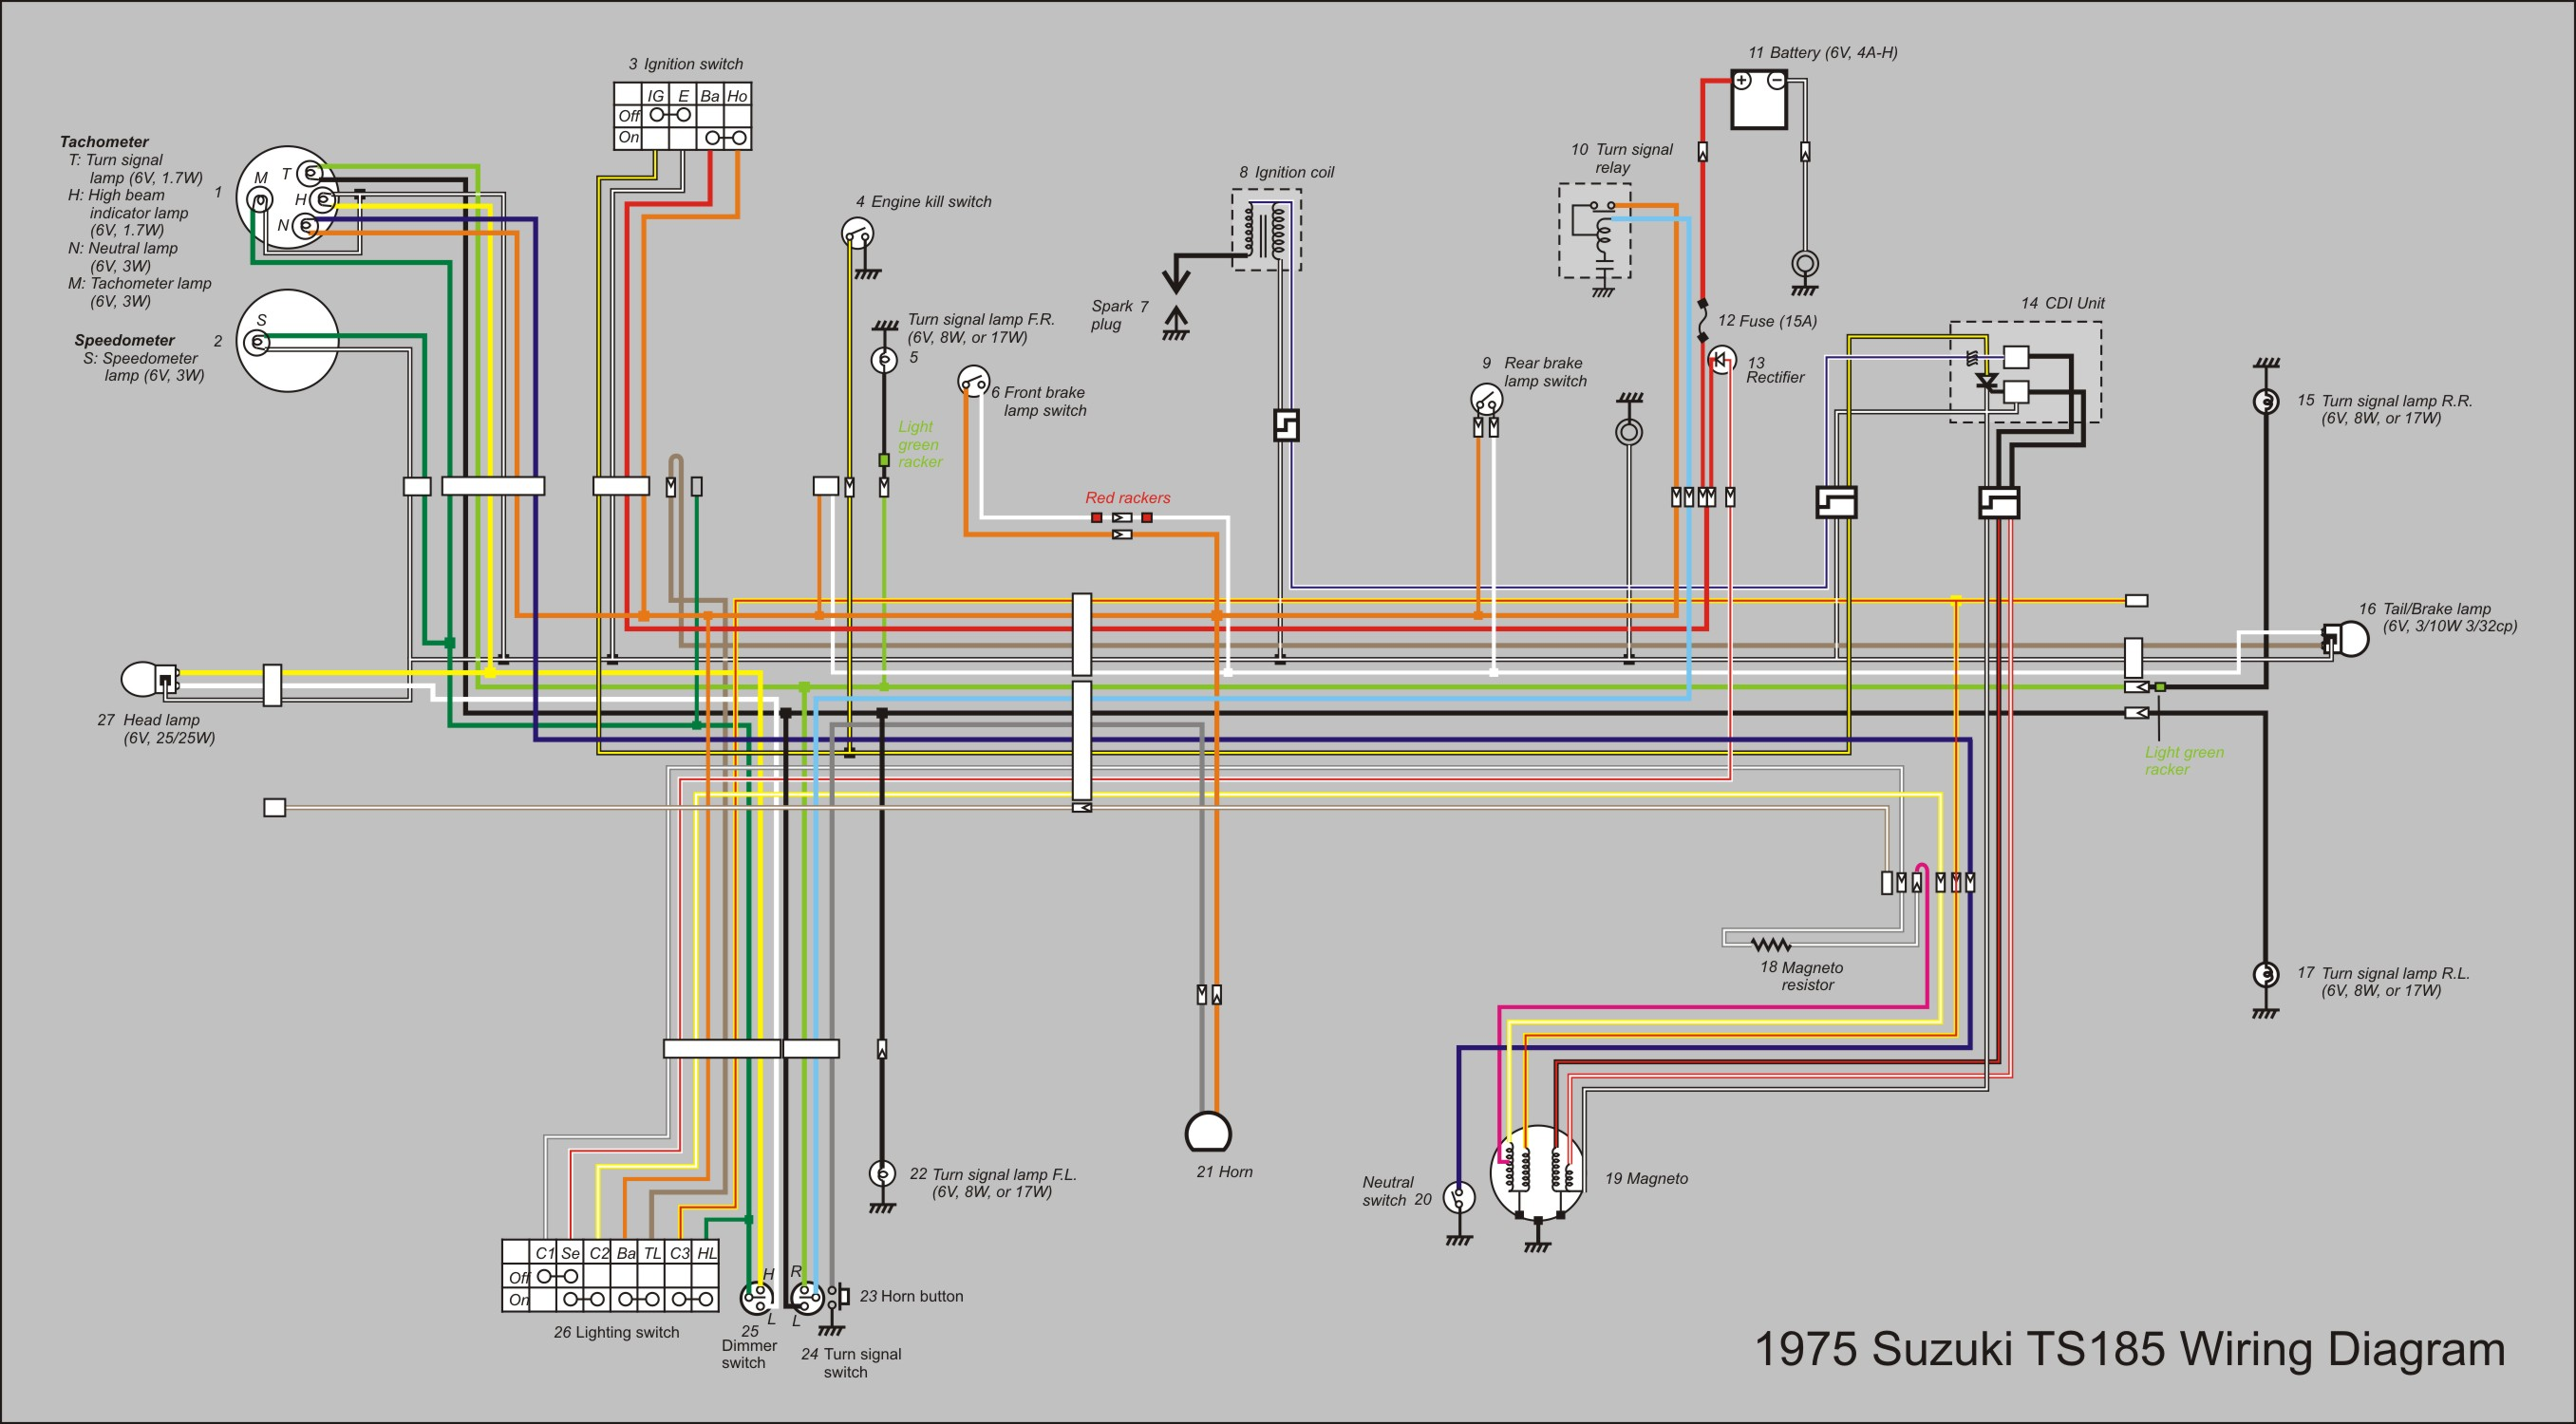 file ts185 wiring diagram new jpg wikimedia commons Ford Mustang Wiring Schematics file ts185 wiring diagram new jpg